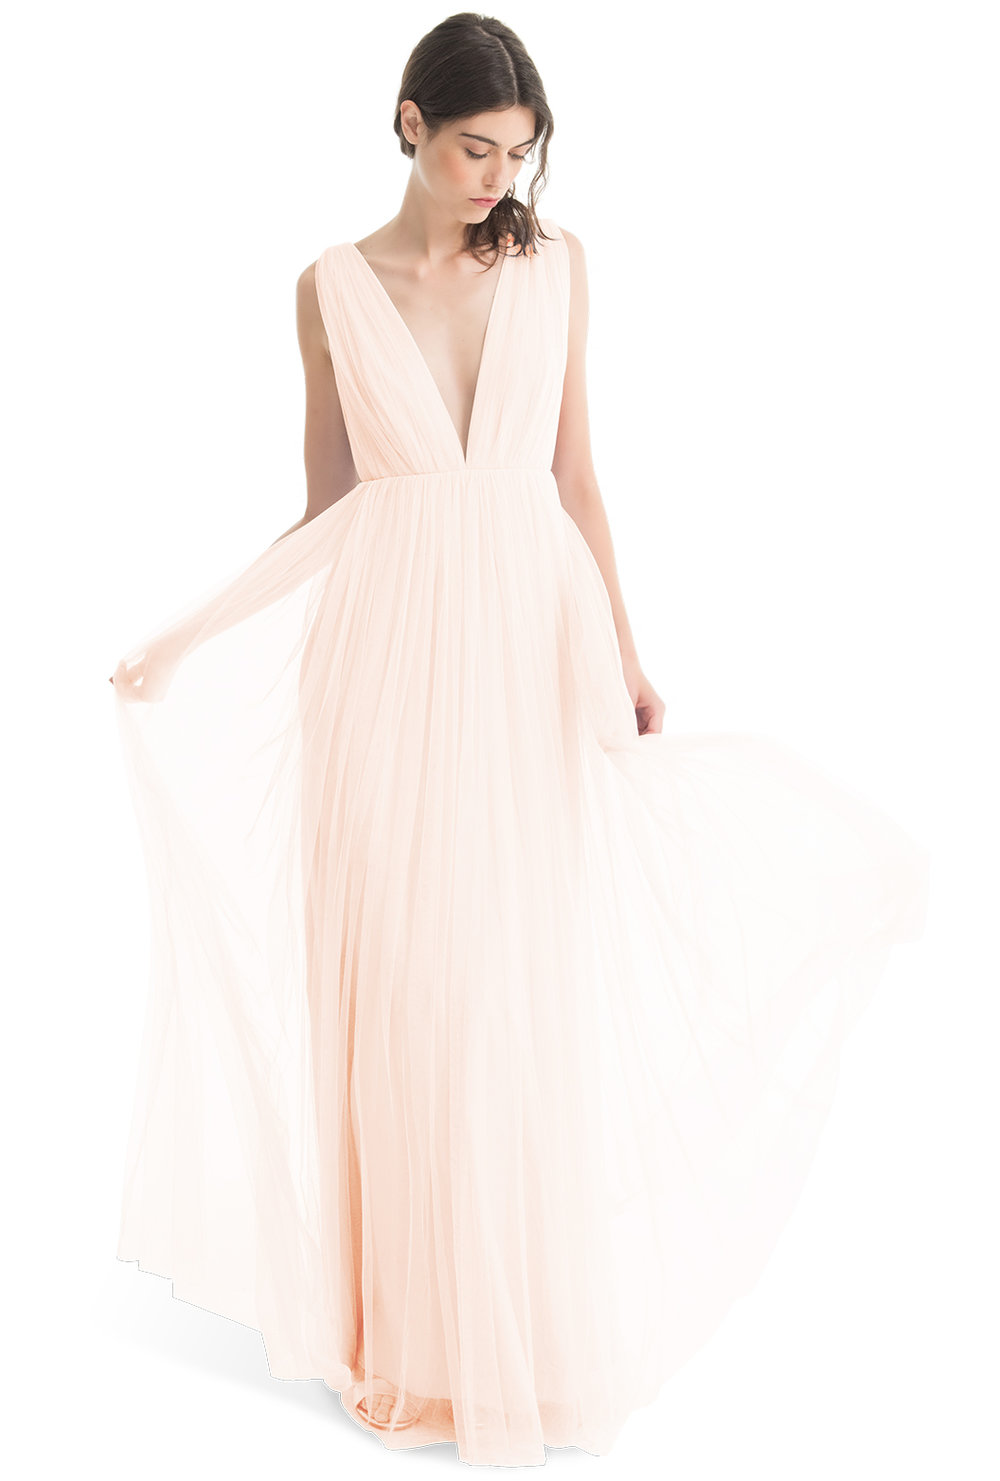 Love me Tender Pink tulle dress Michelle by Joanna August Bridesmaids